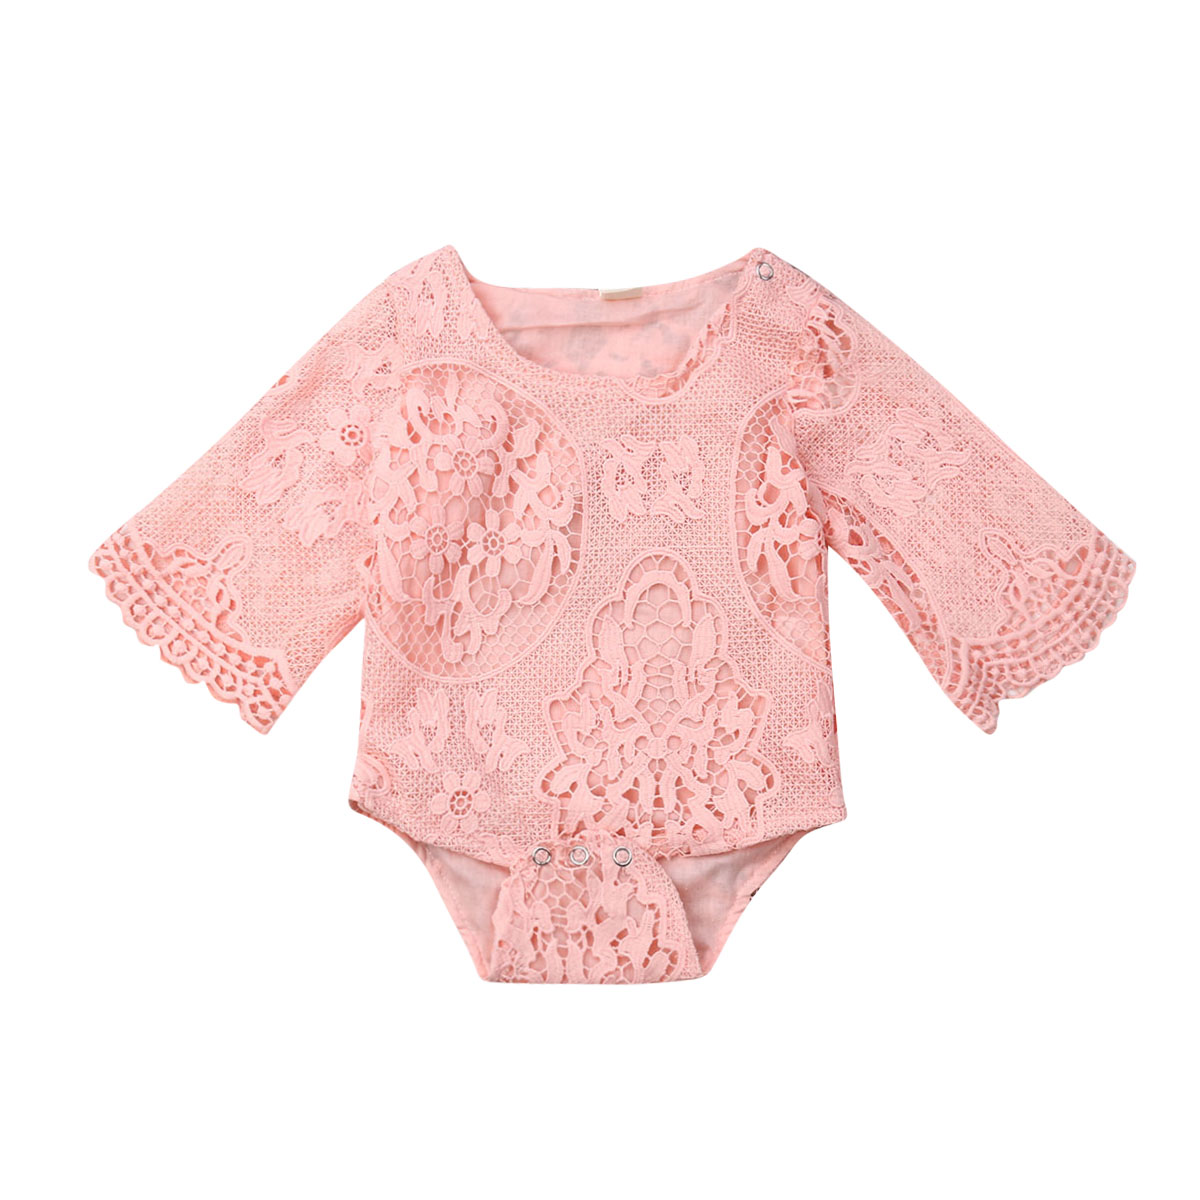 2019 Summer Cute Newborn Baby Girl Flare Sleeve Lace Floral Bodysuit Jumpsuit Princess Girls One Pieces Sunsuit Clothes